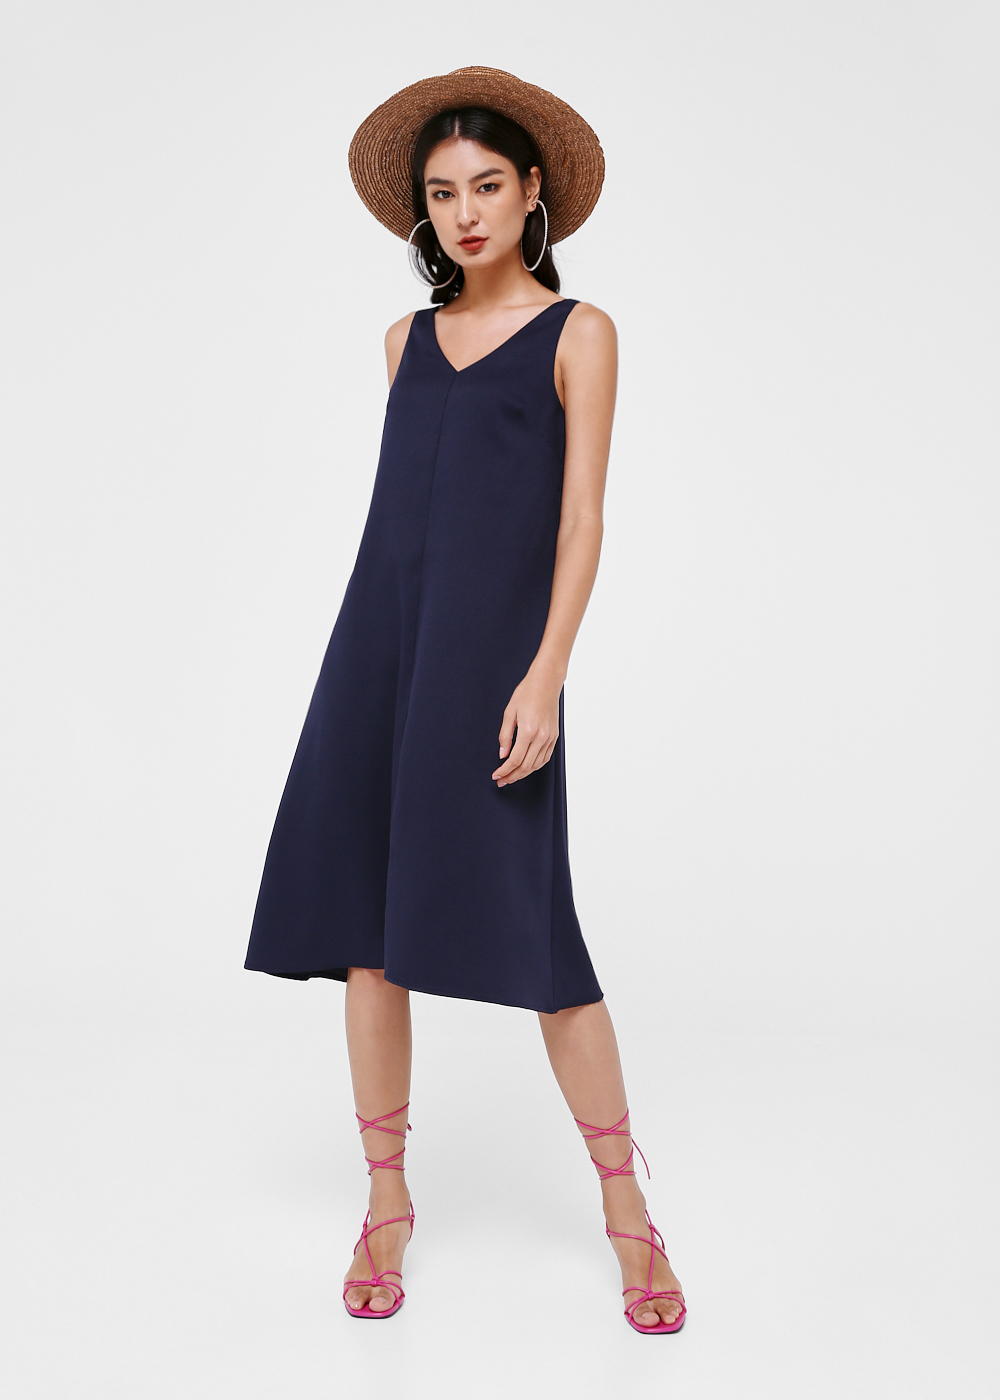 Norah V-neck Midi Dress